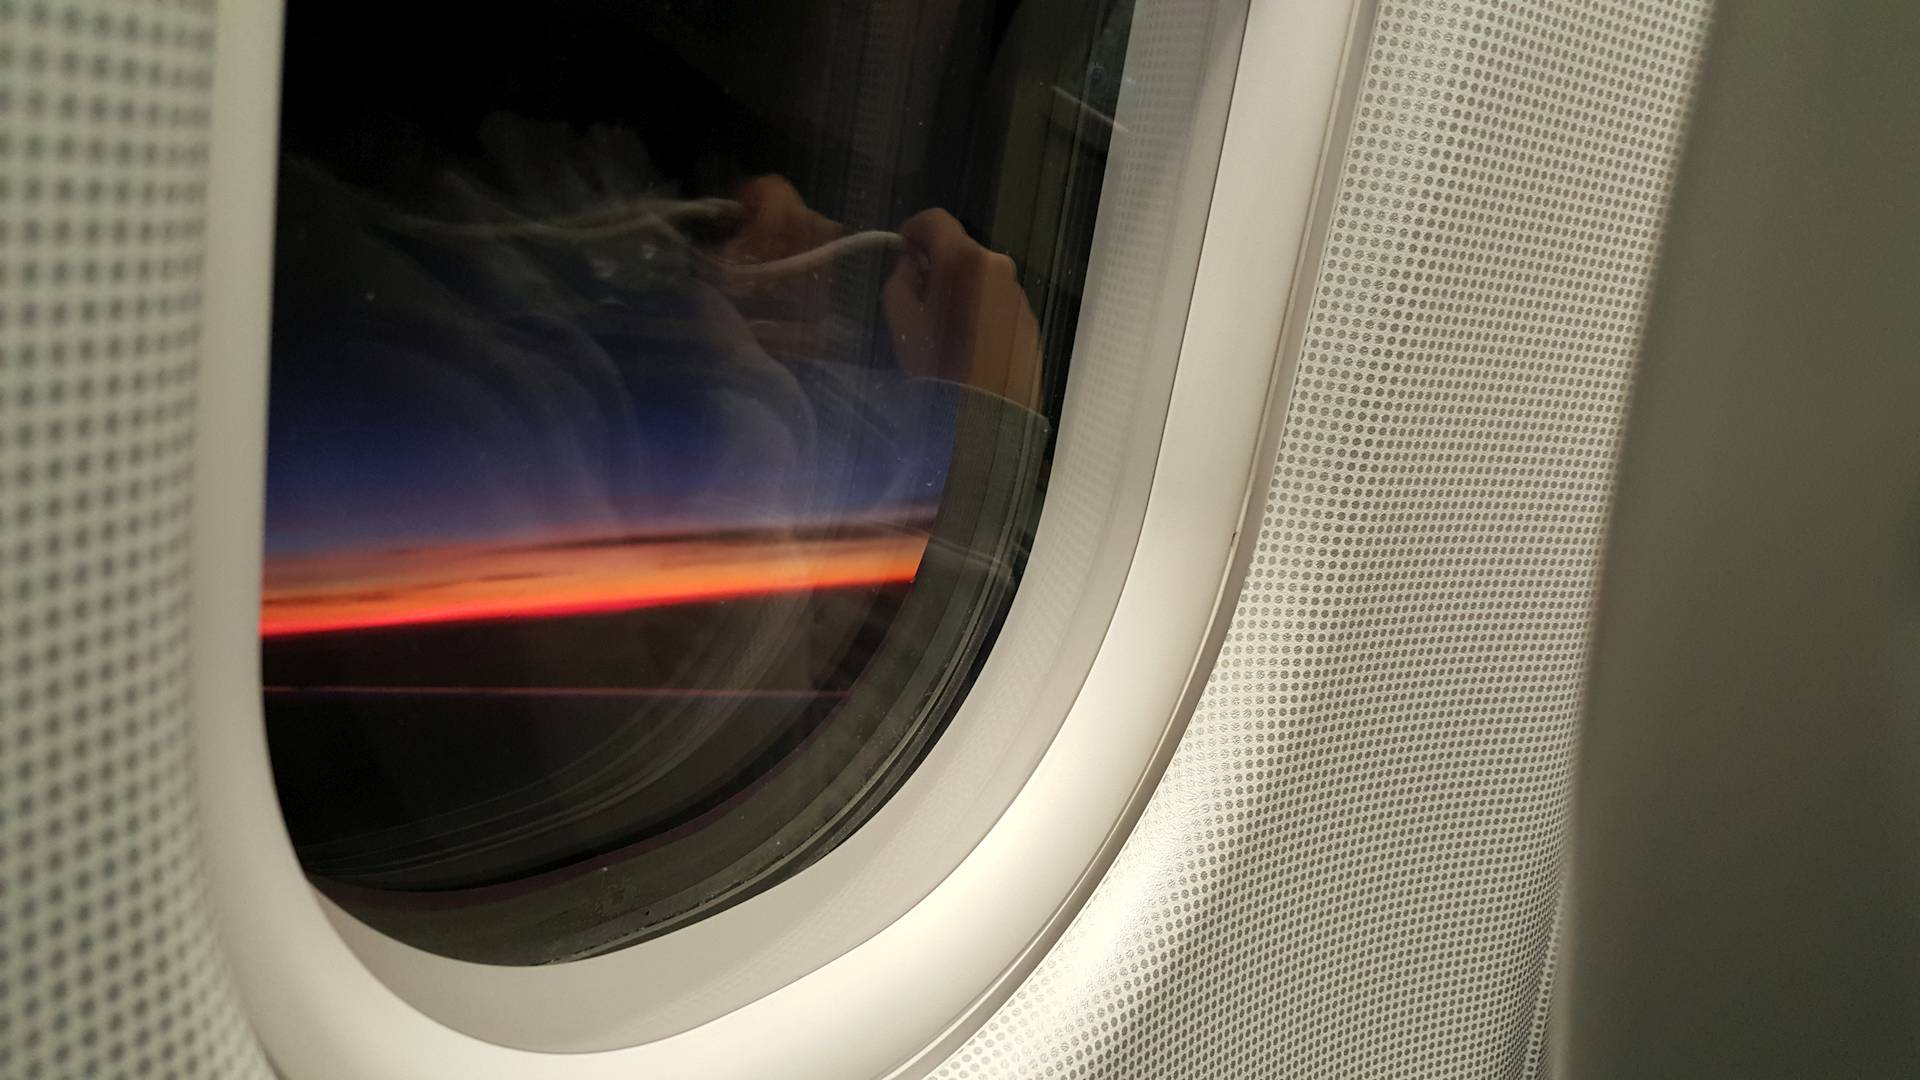 window_airplane